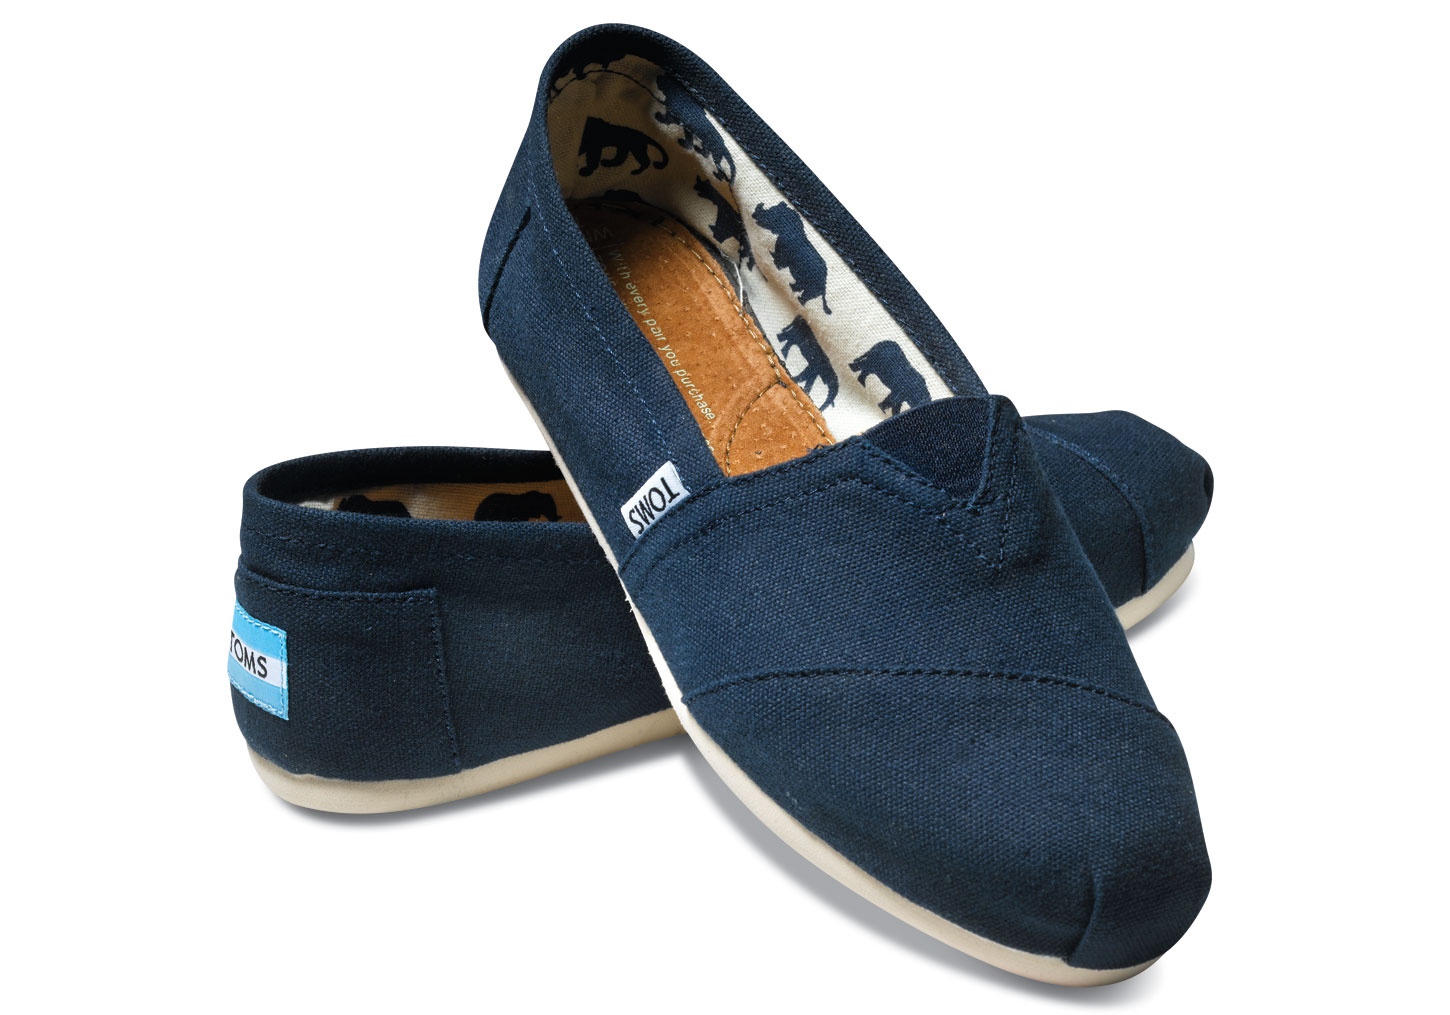 [ONE FOR ONEで話題!] TOMS(トムス) CLASSIC シリーズ